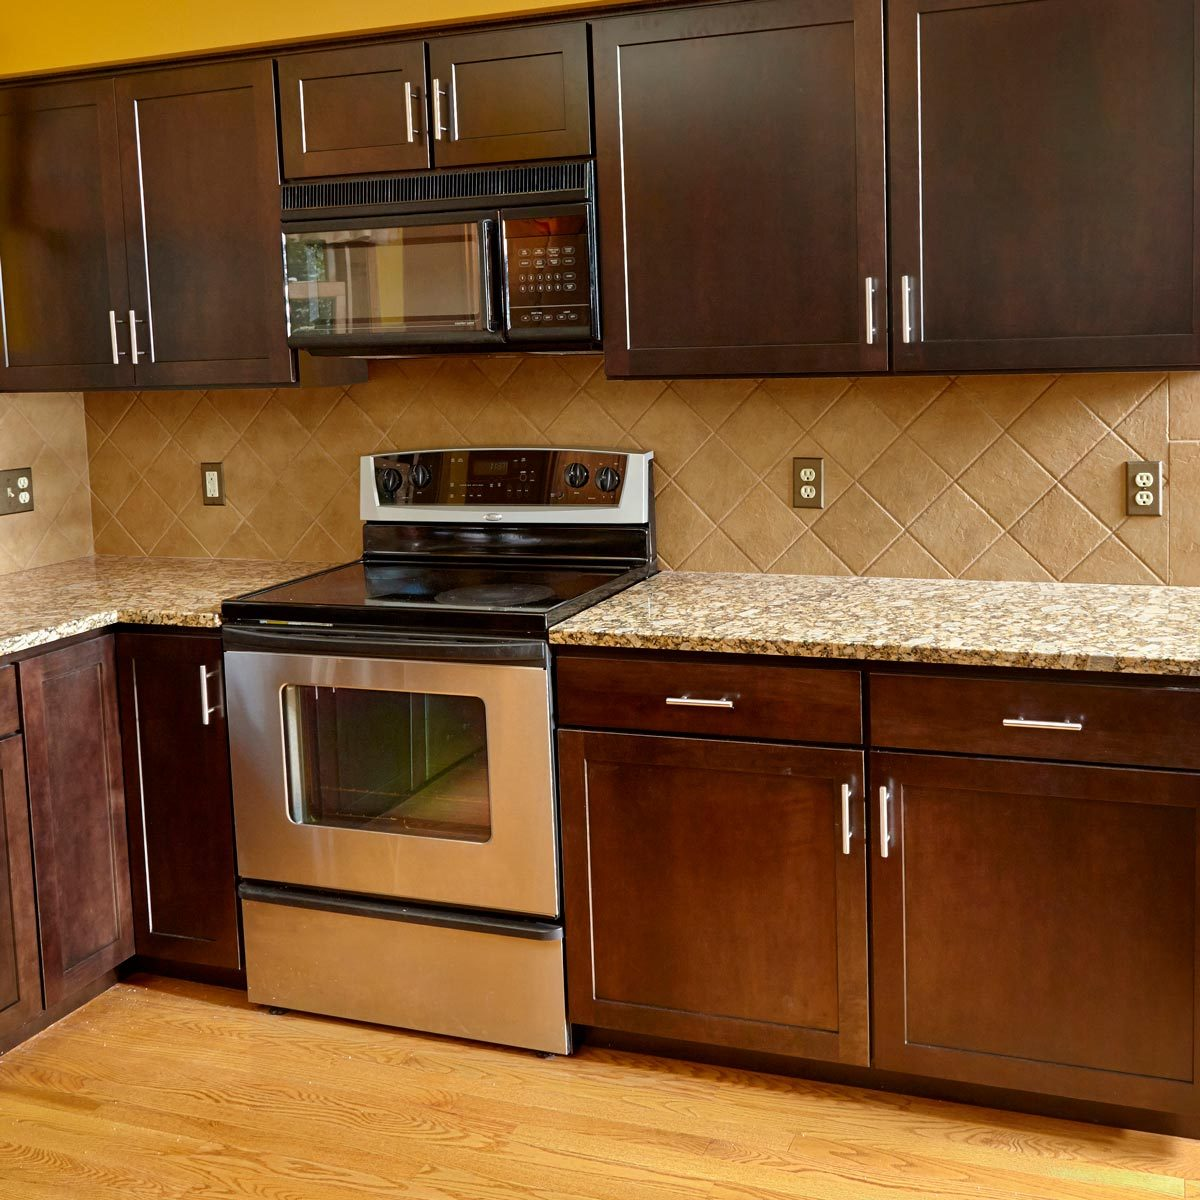 Refacing Laminate Kitchen Cabinets Cabinet Refacing The Family Handyman